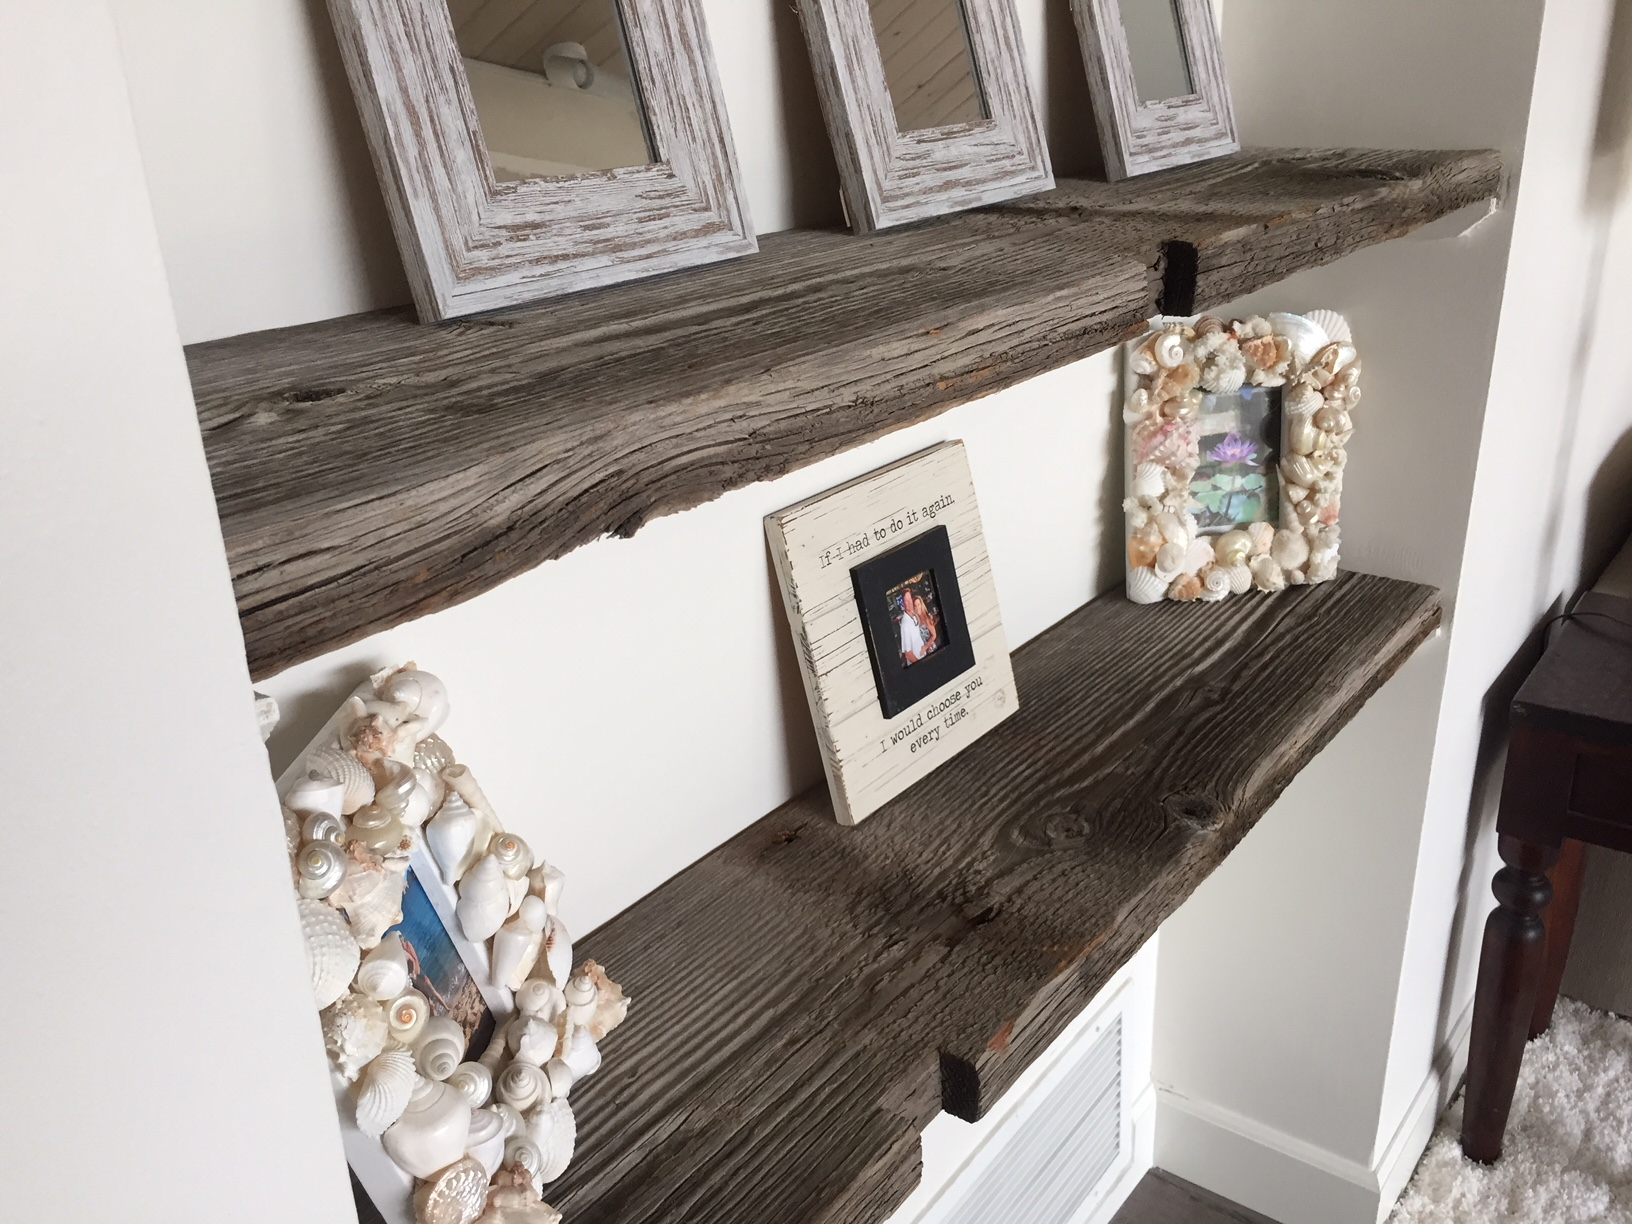 Reclaimed wood shelving adds great character to any area. The picture above shows how a customer used reclaimed wood material from Montana to create wonderful shelving. Contact or visit U.S. Reclaimed, Vintage Lumber & Wood Works to get started on your reclaimed wood project.